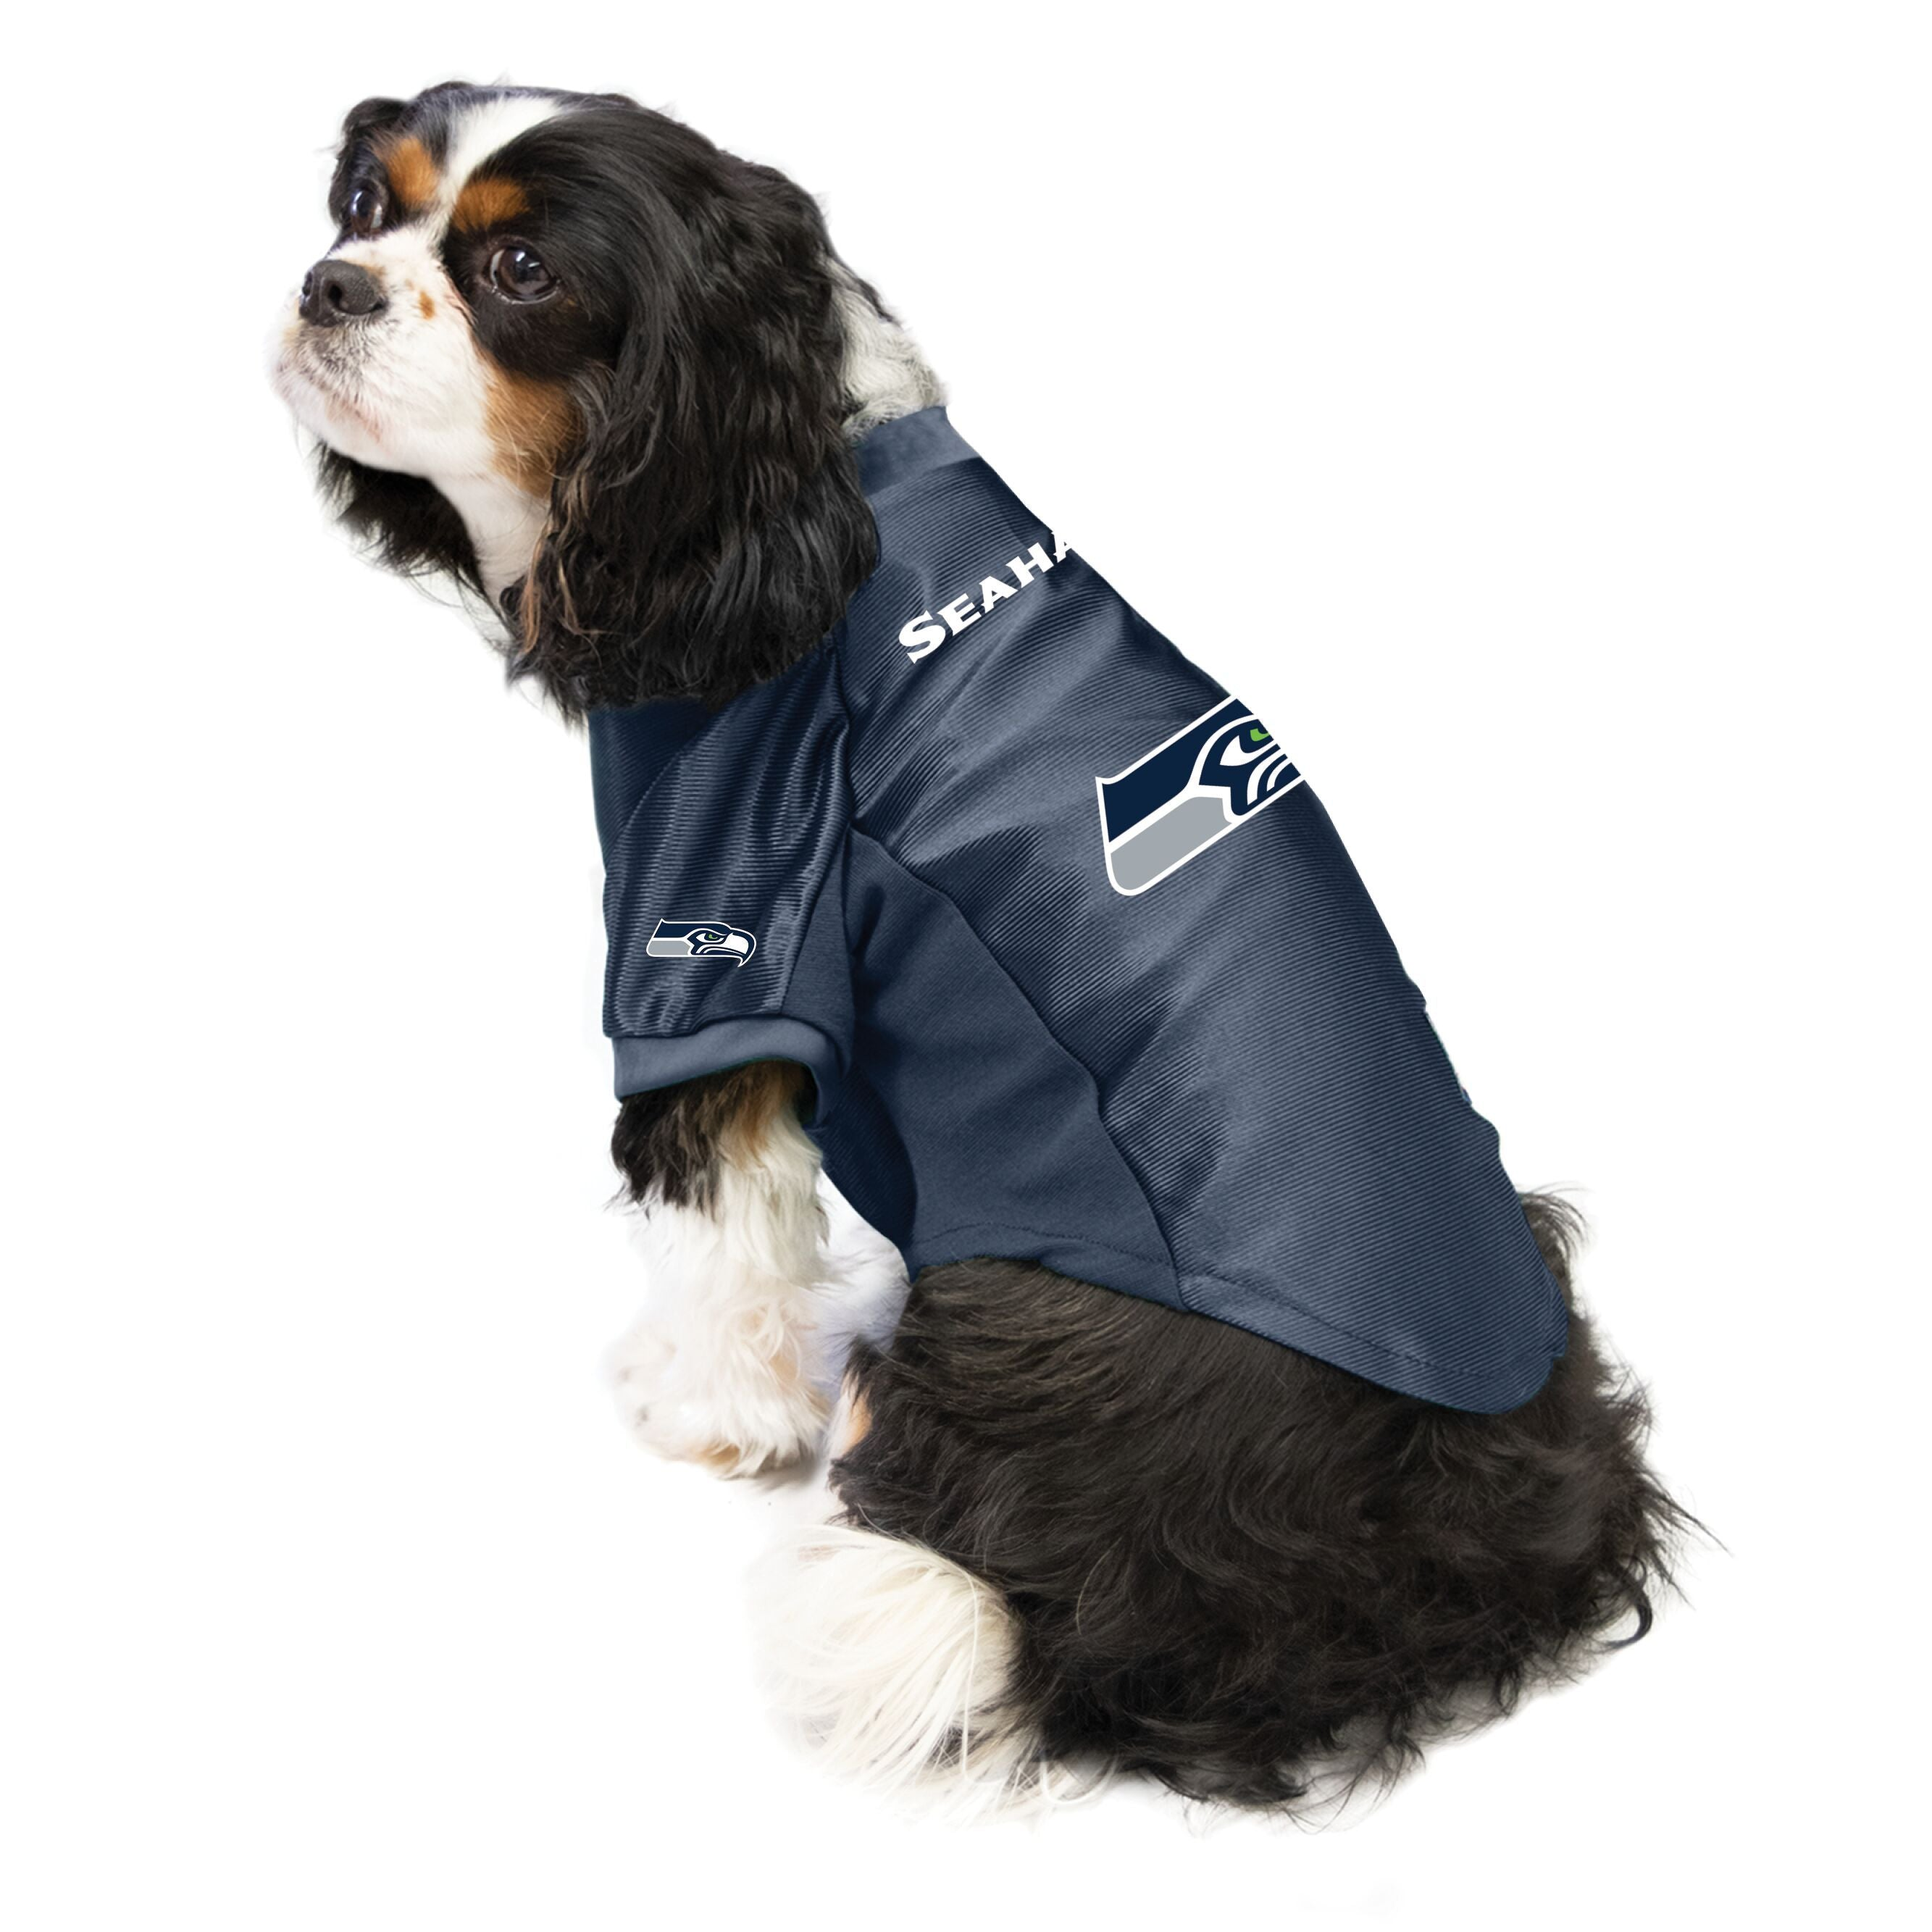 Seahawks outfit for dogs